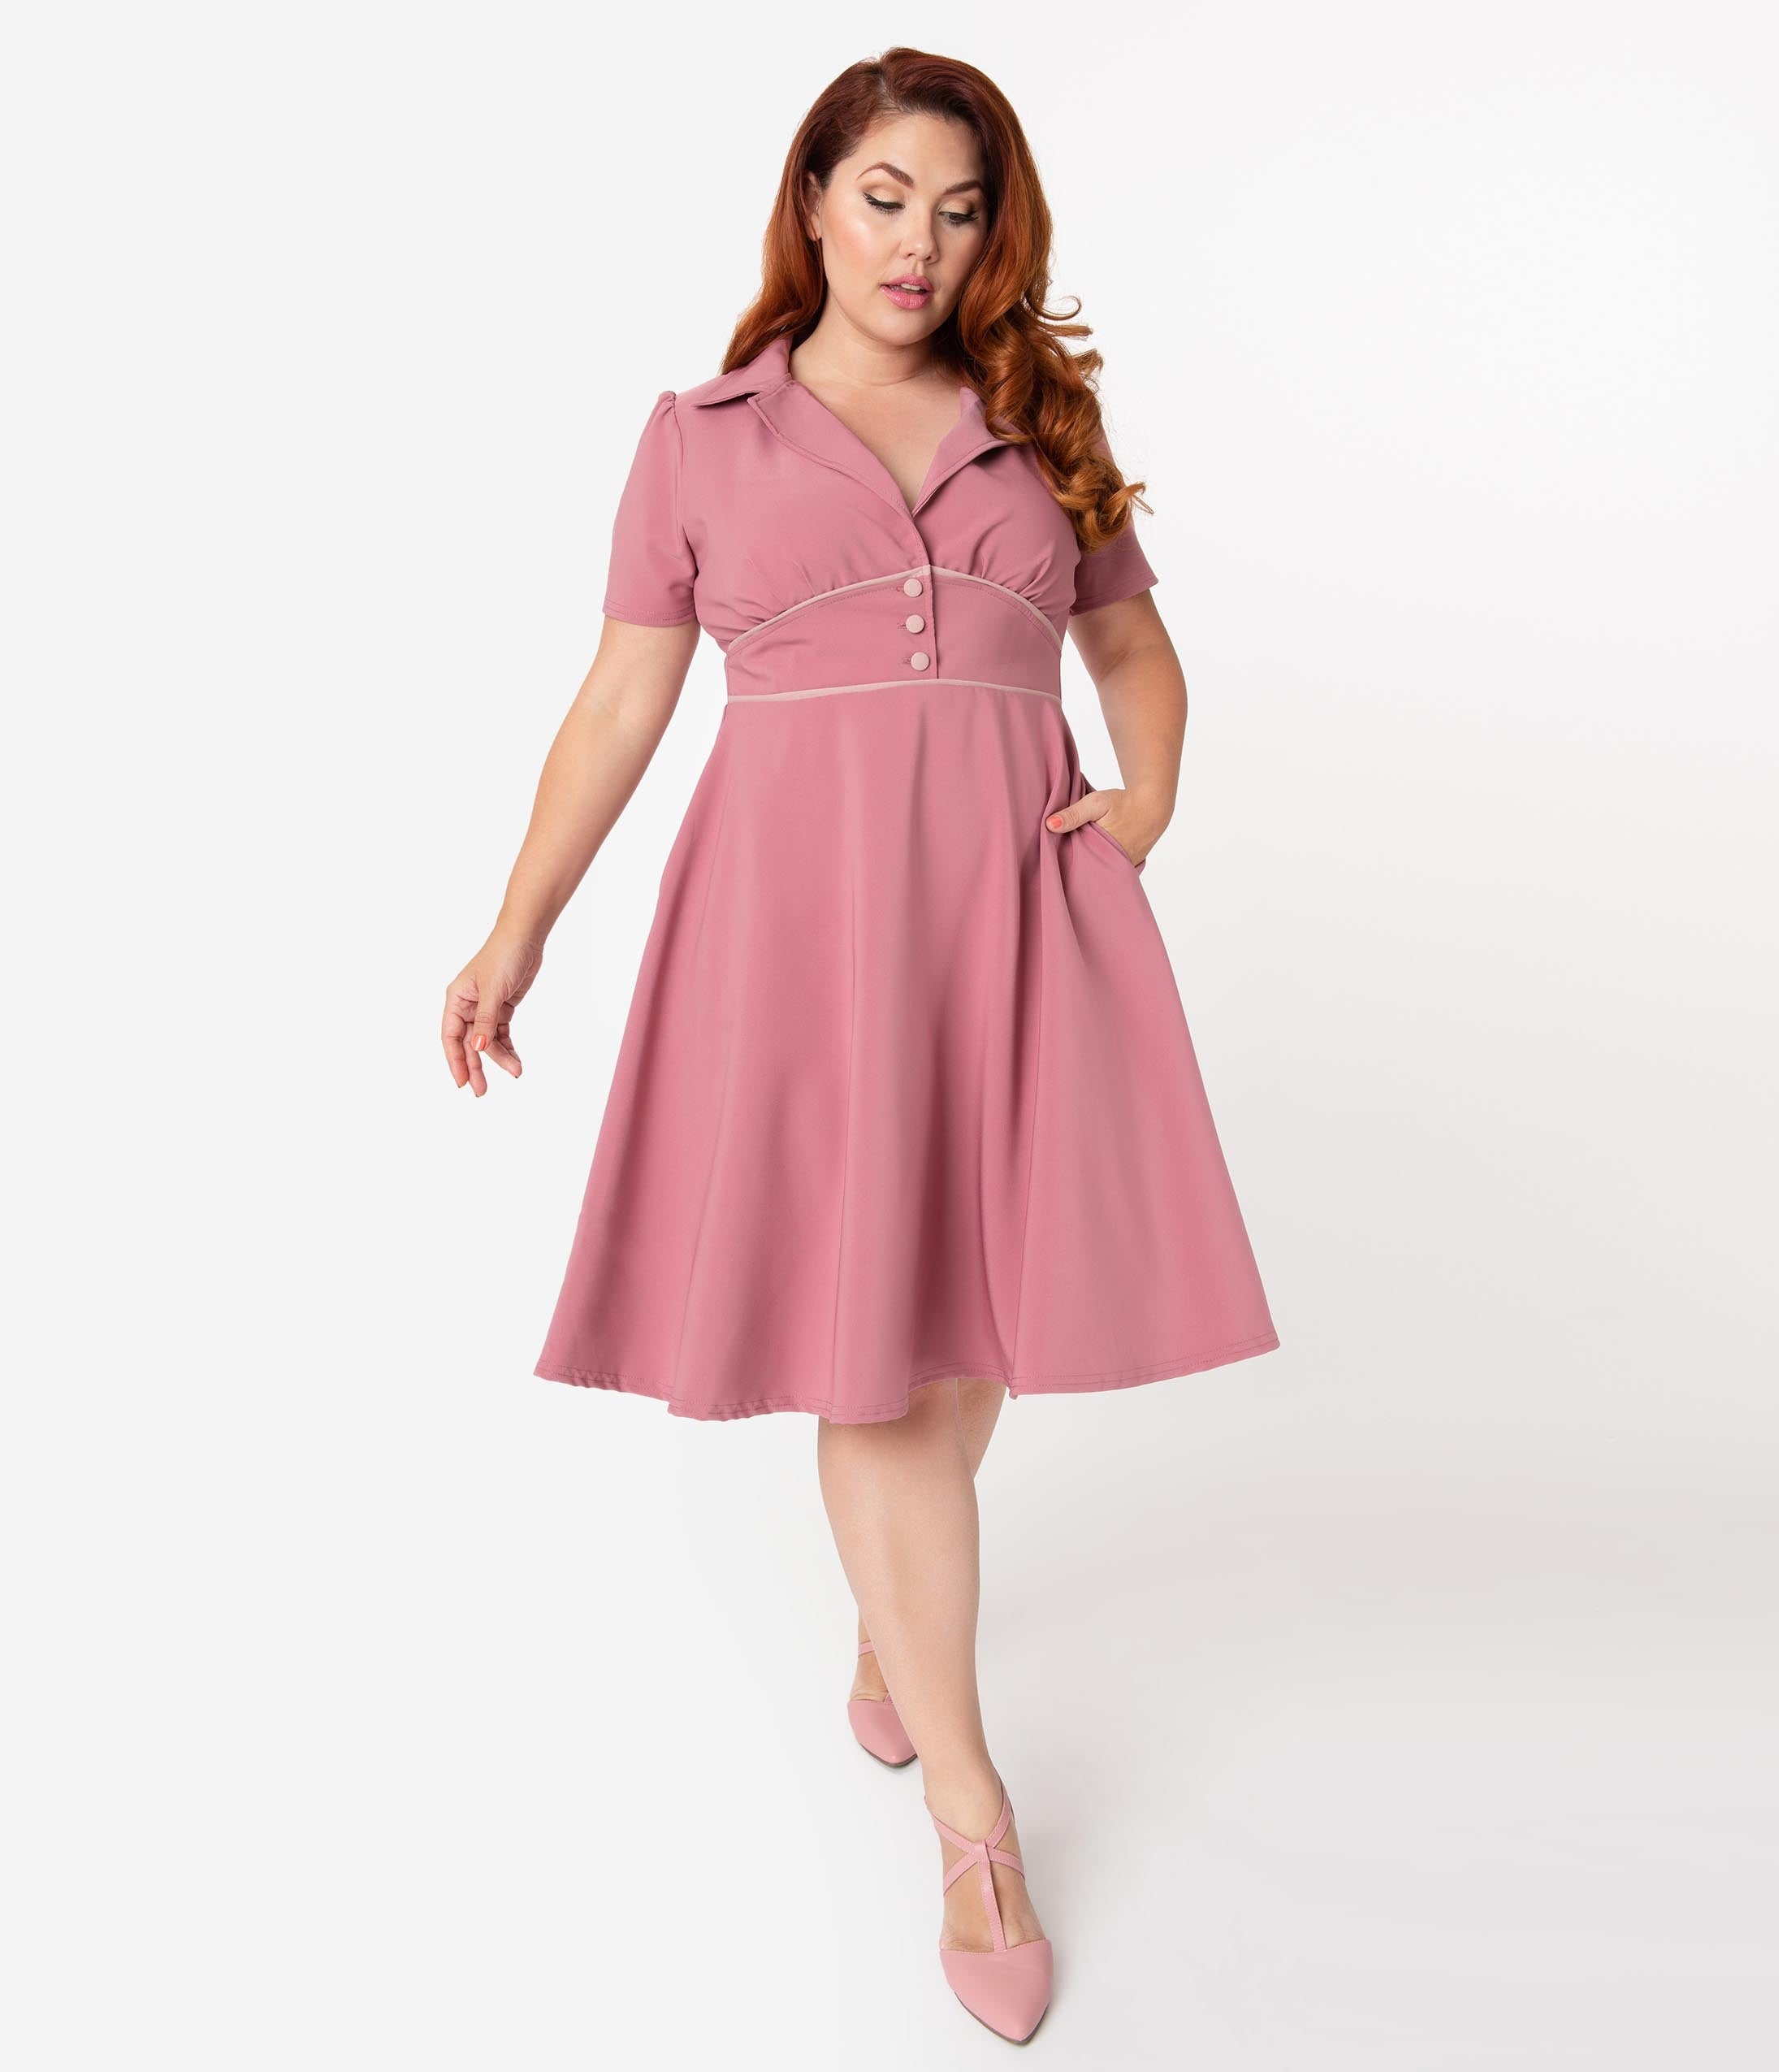 1940s Dresses | 40s Dress, Swing Dress Steady Plus Size 1940S Style Mulberry Pink Katherine Swing Dress $74.00 AT vintagedancer.com